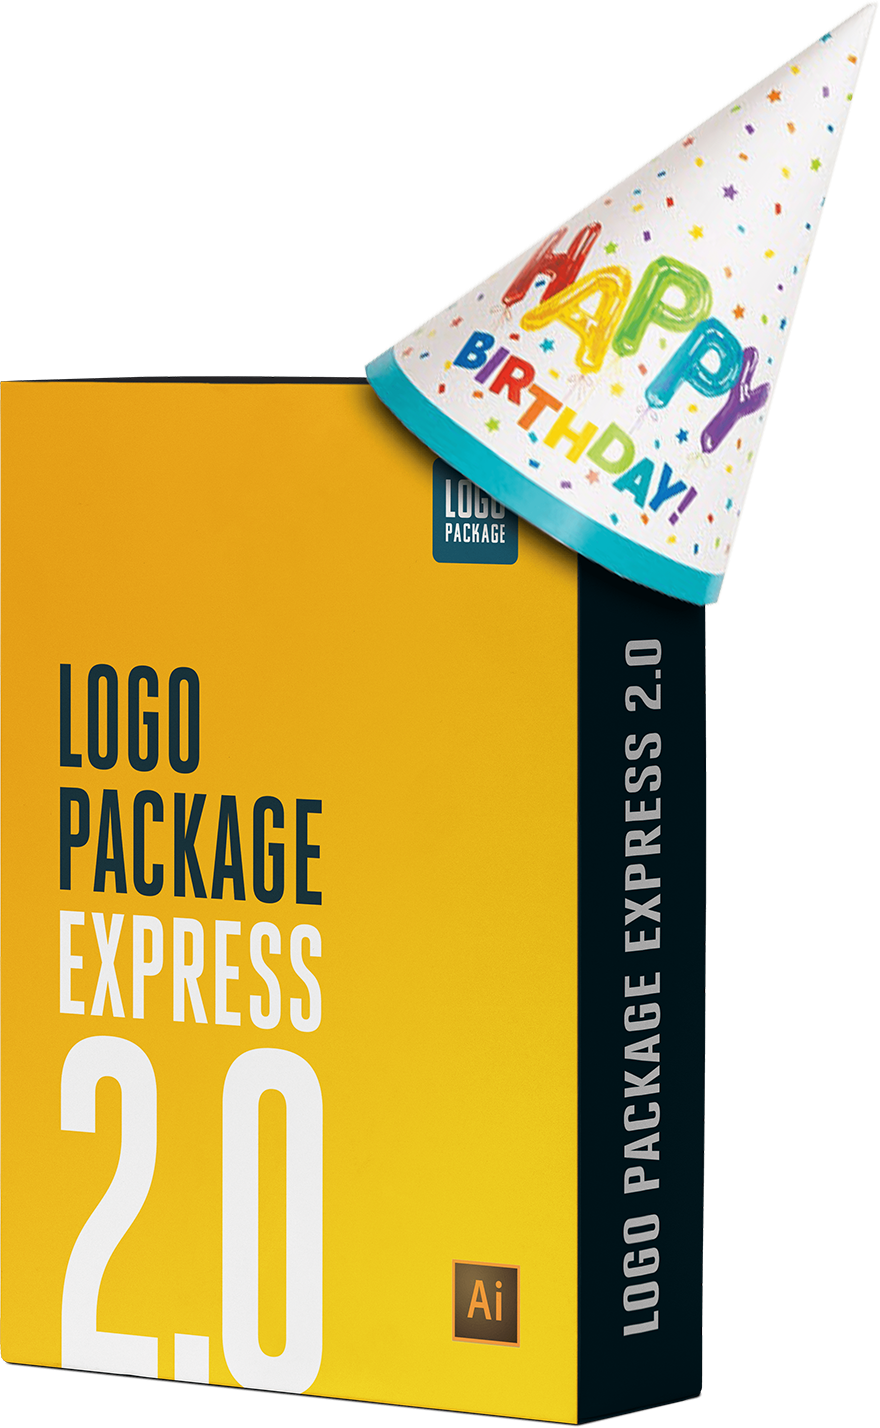 Logo Package Express 2.0 box wearing a birthday hat